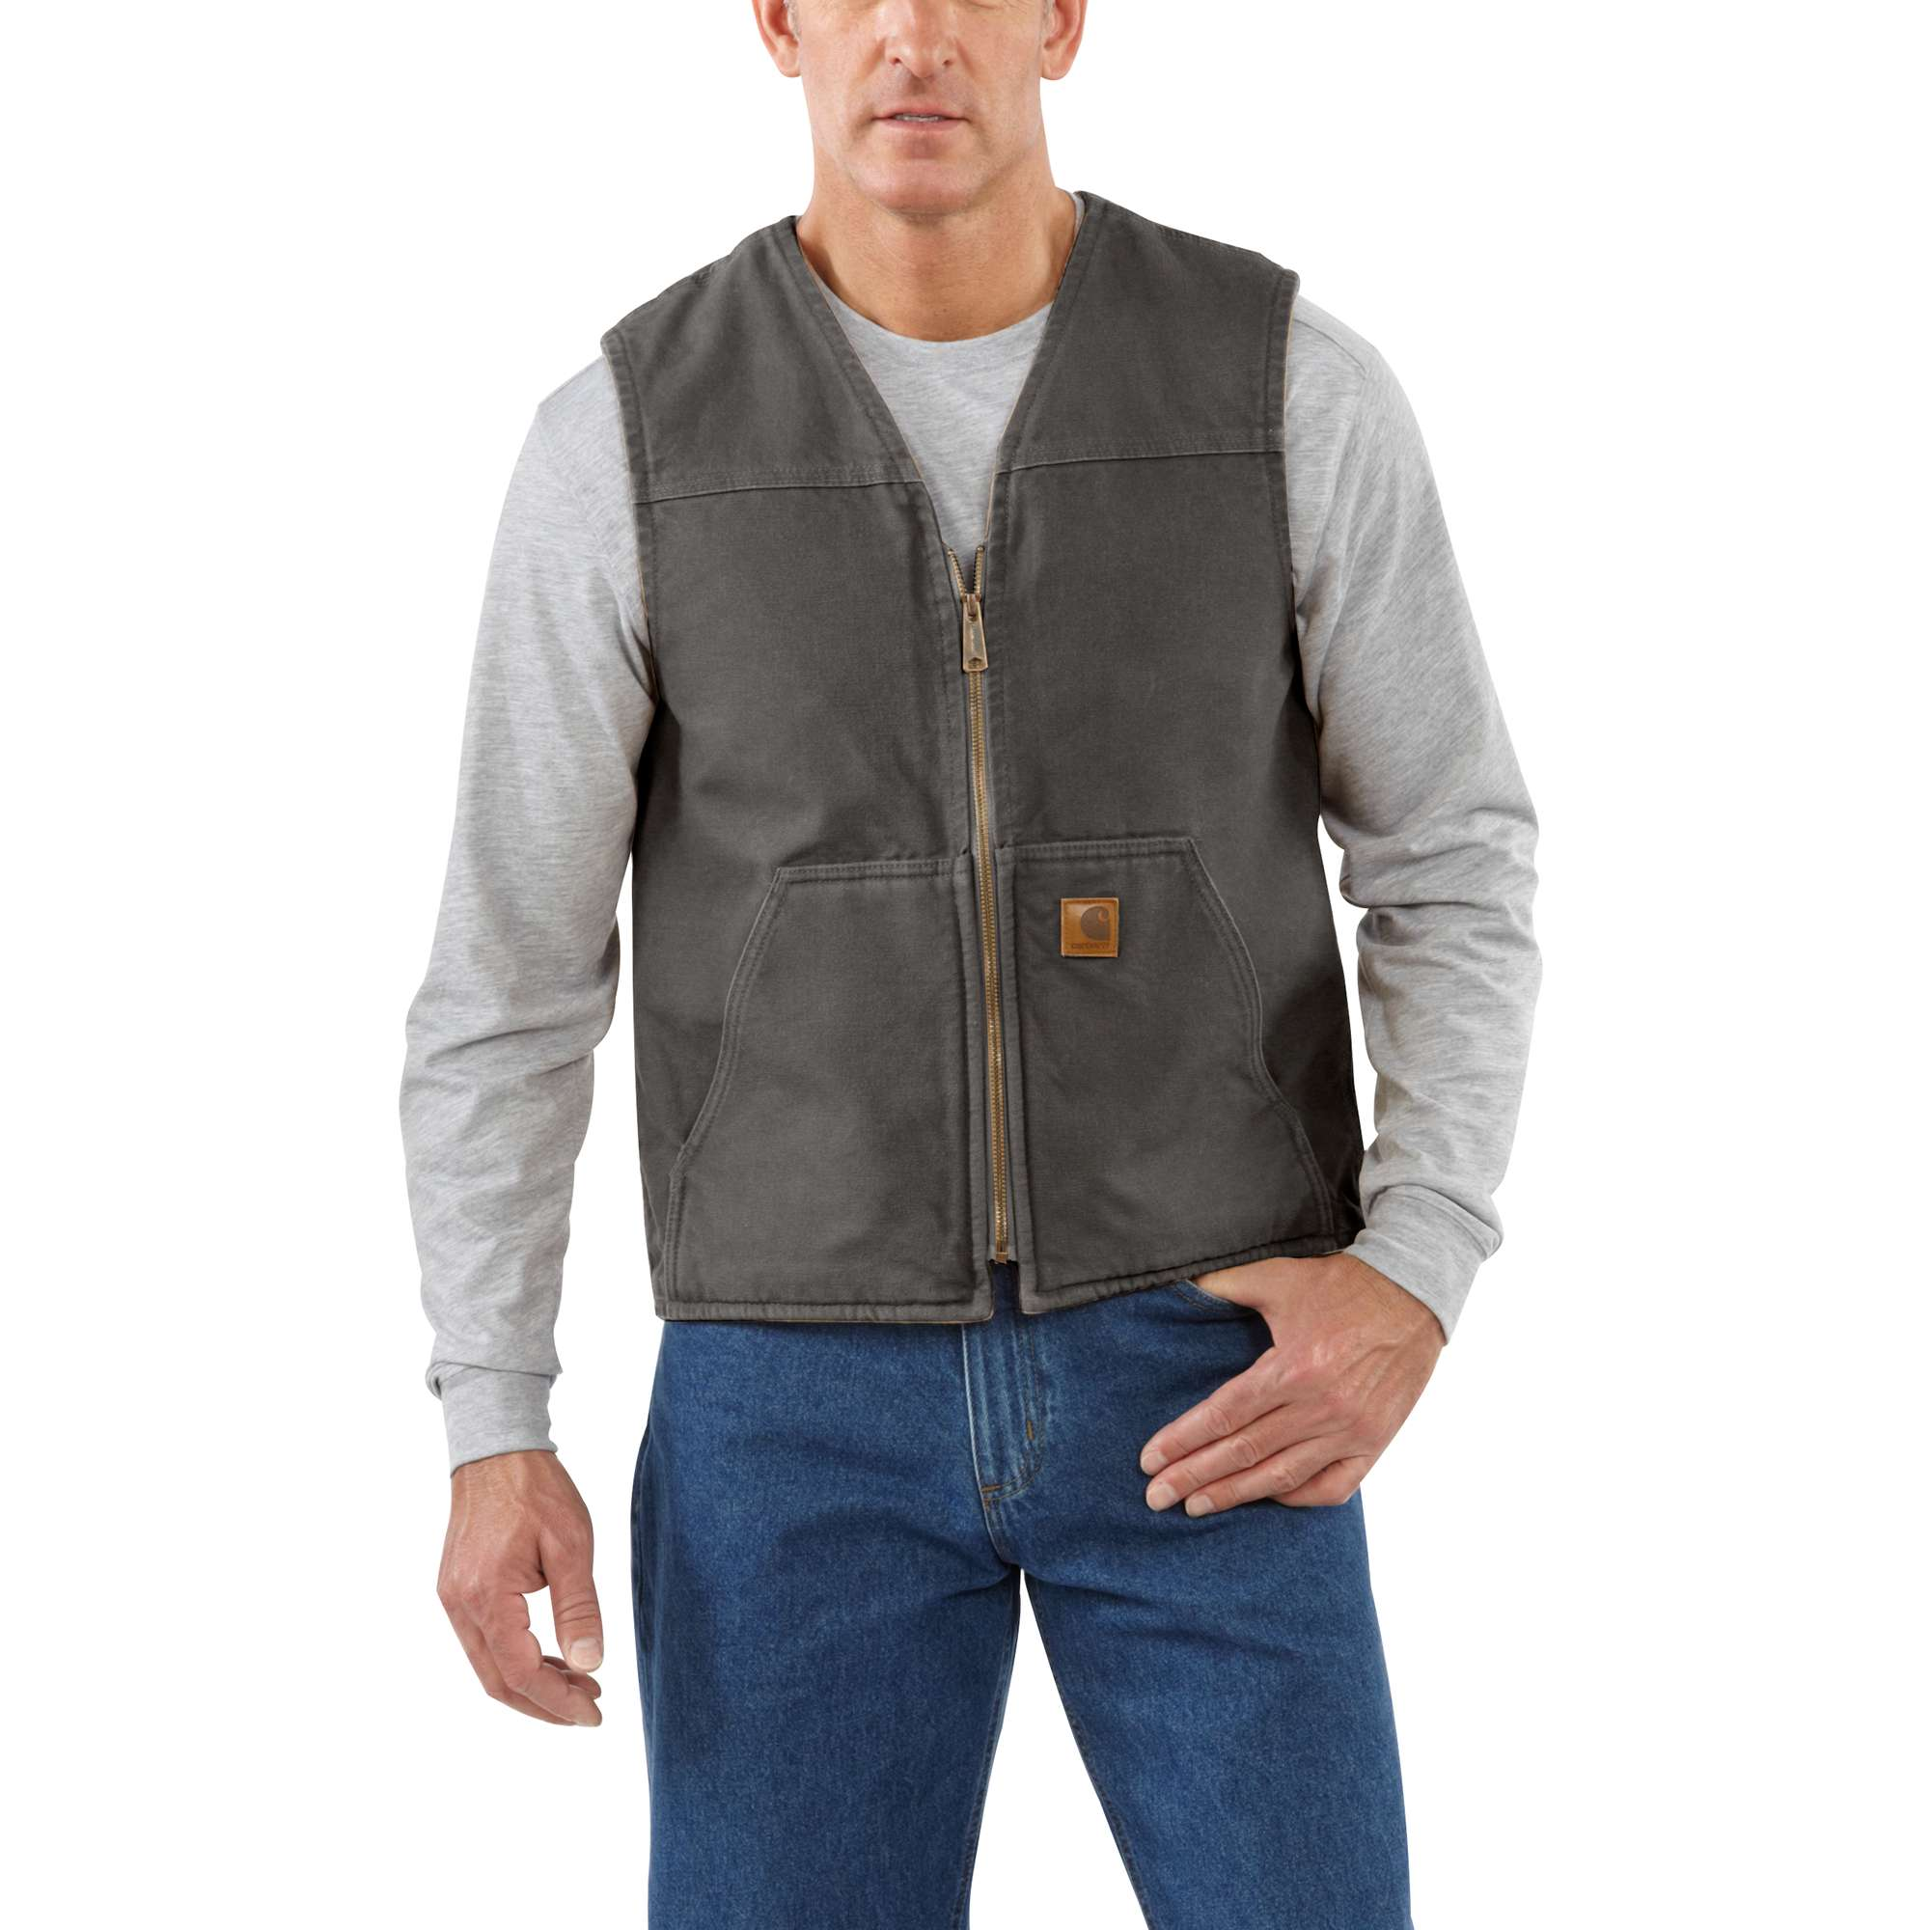 Men's Sandstone Rugged Sherpa Lined Vest, Brown, swatch